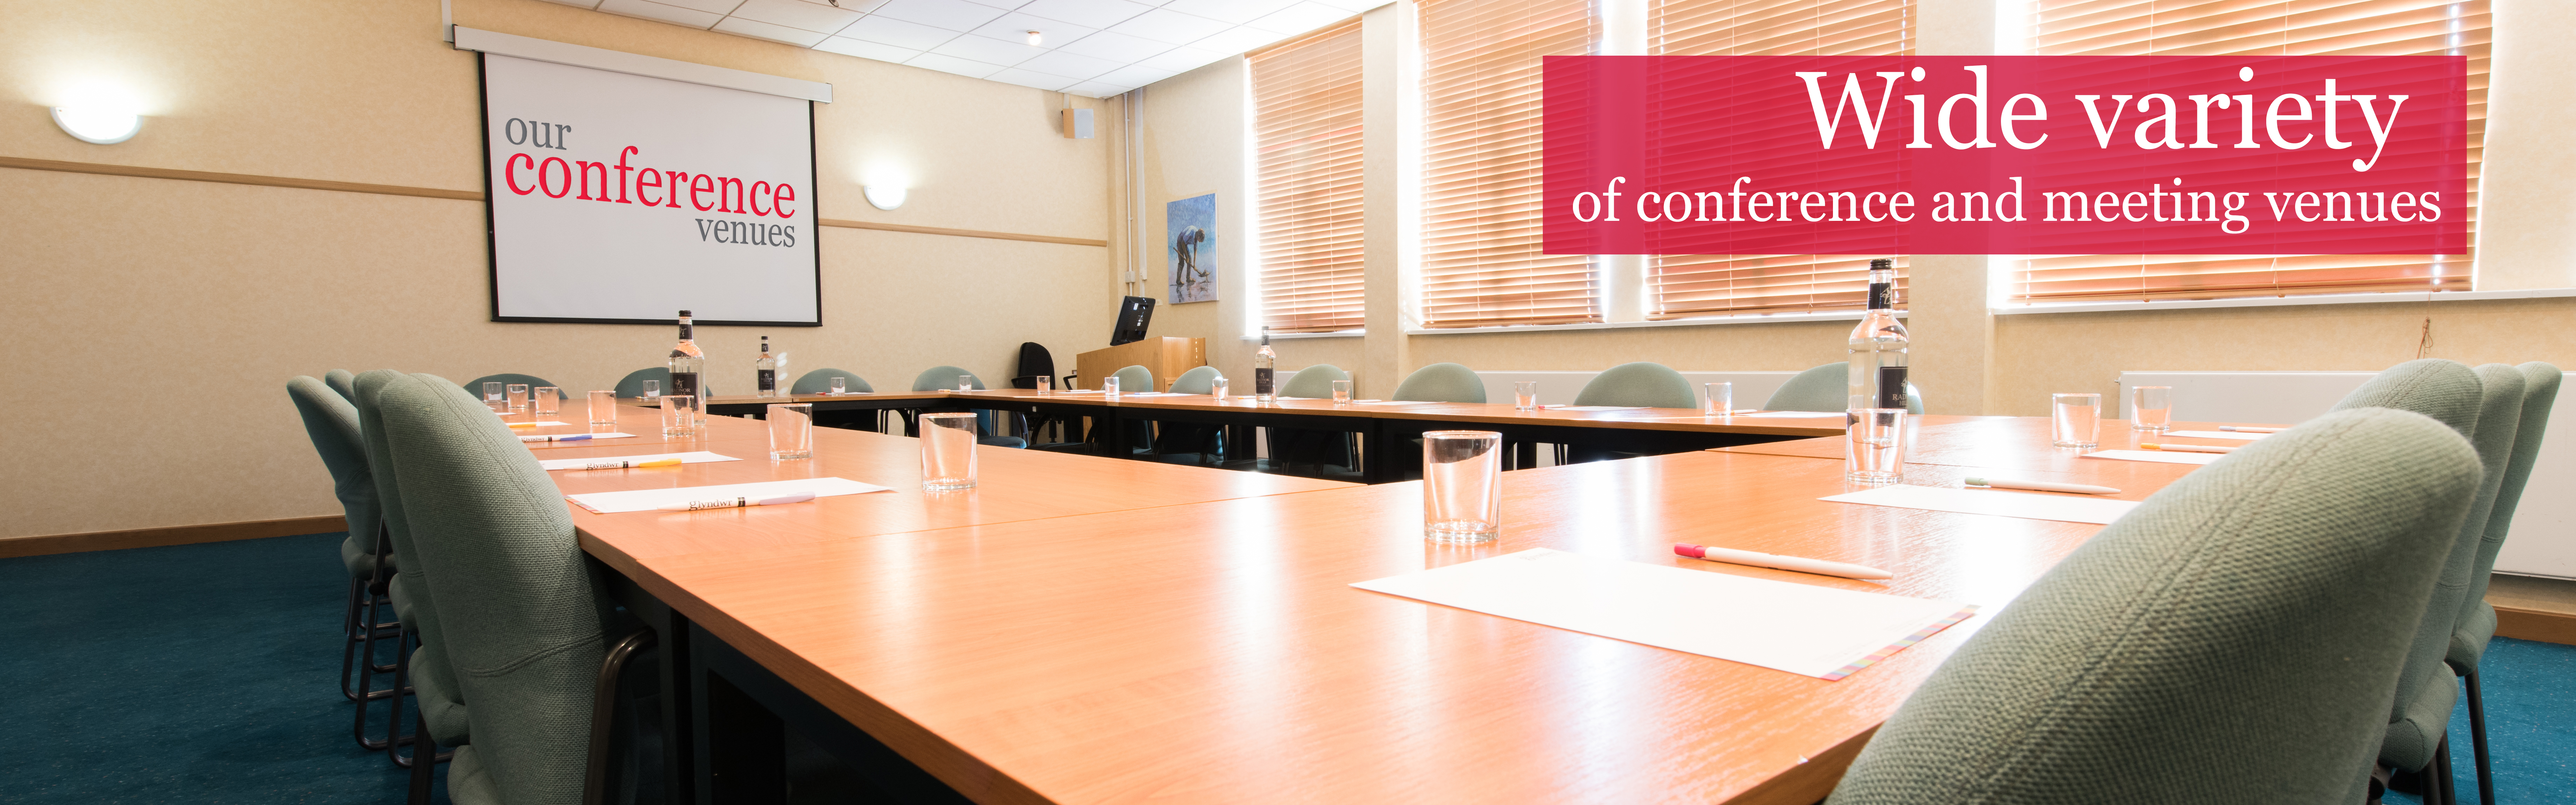 Wide variety of conference and meeting venues